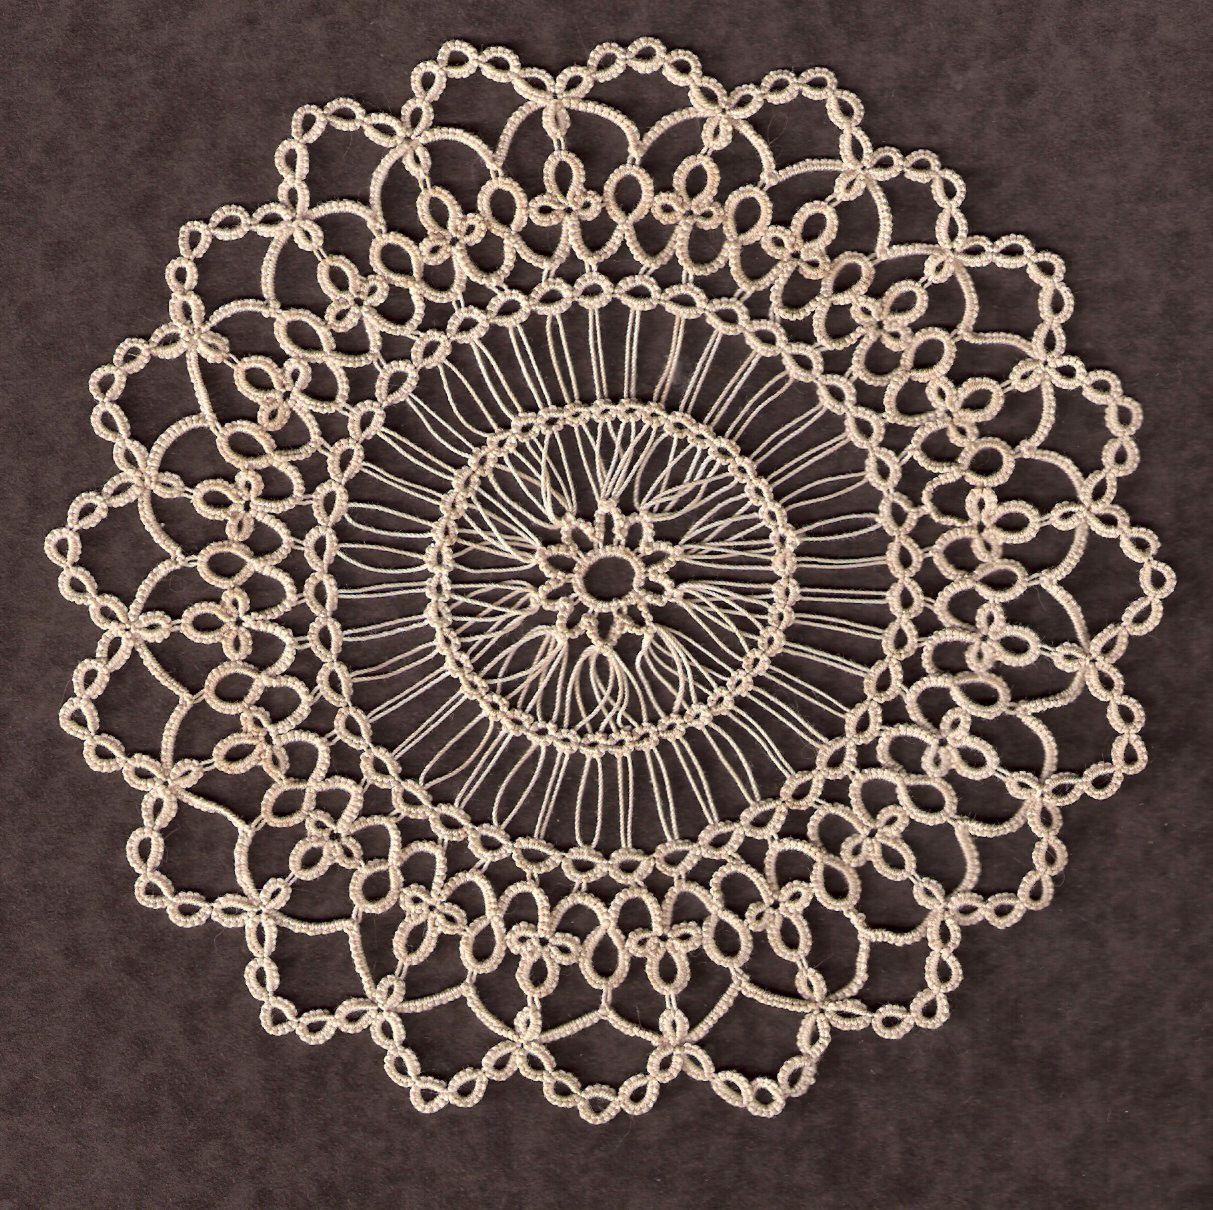 Mary Maynard s Small Doily in Tatting AND Hairpin Lace